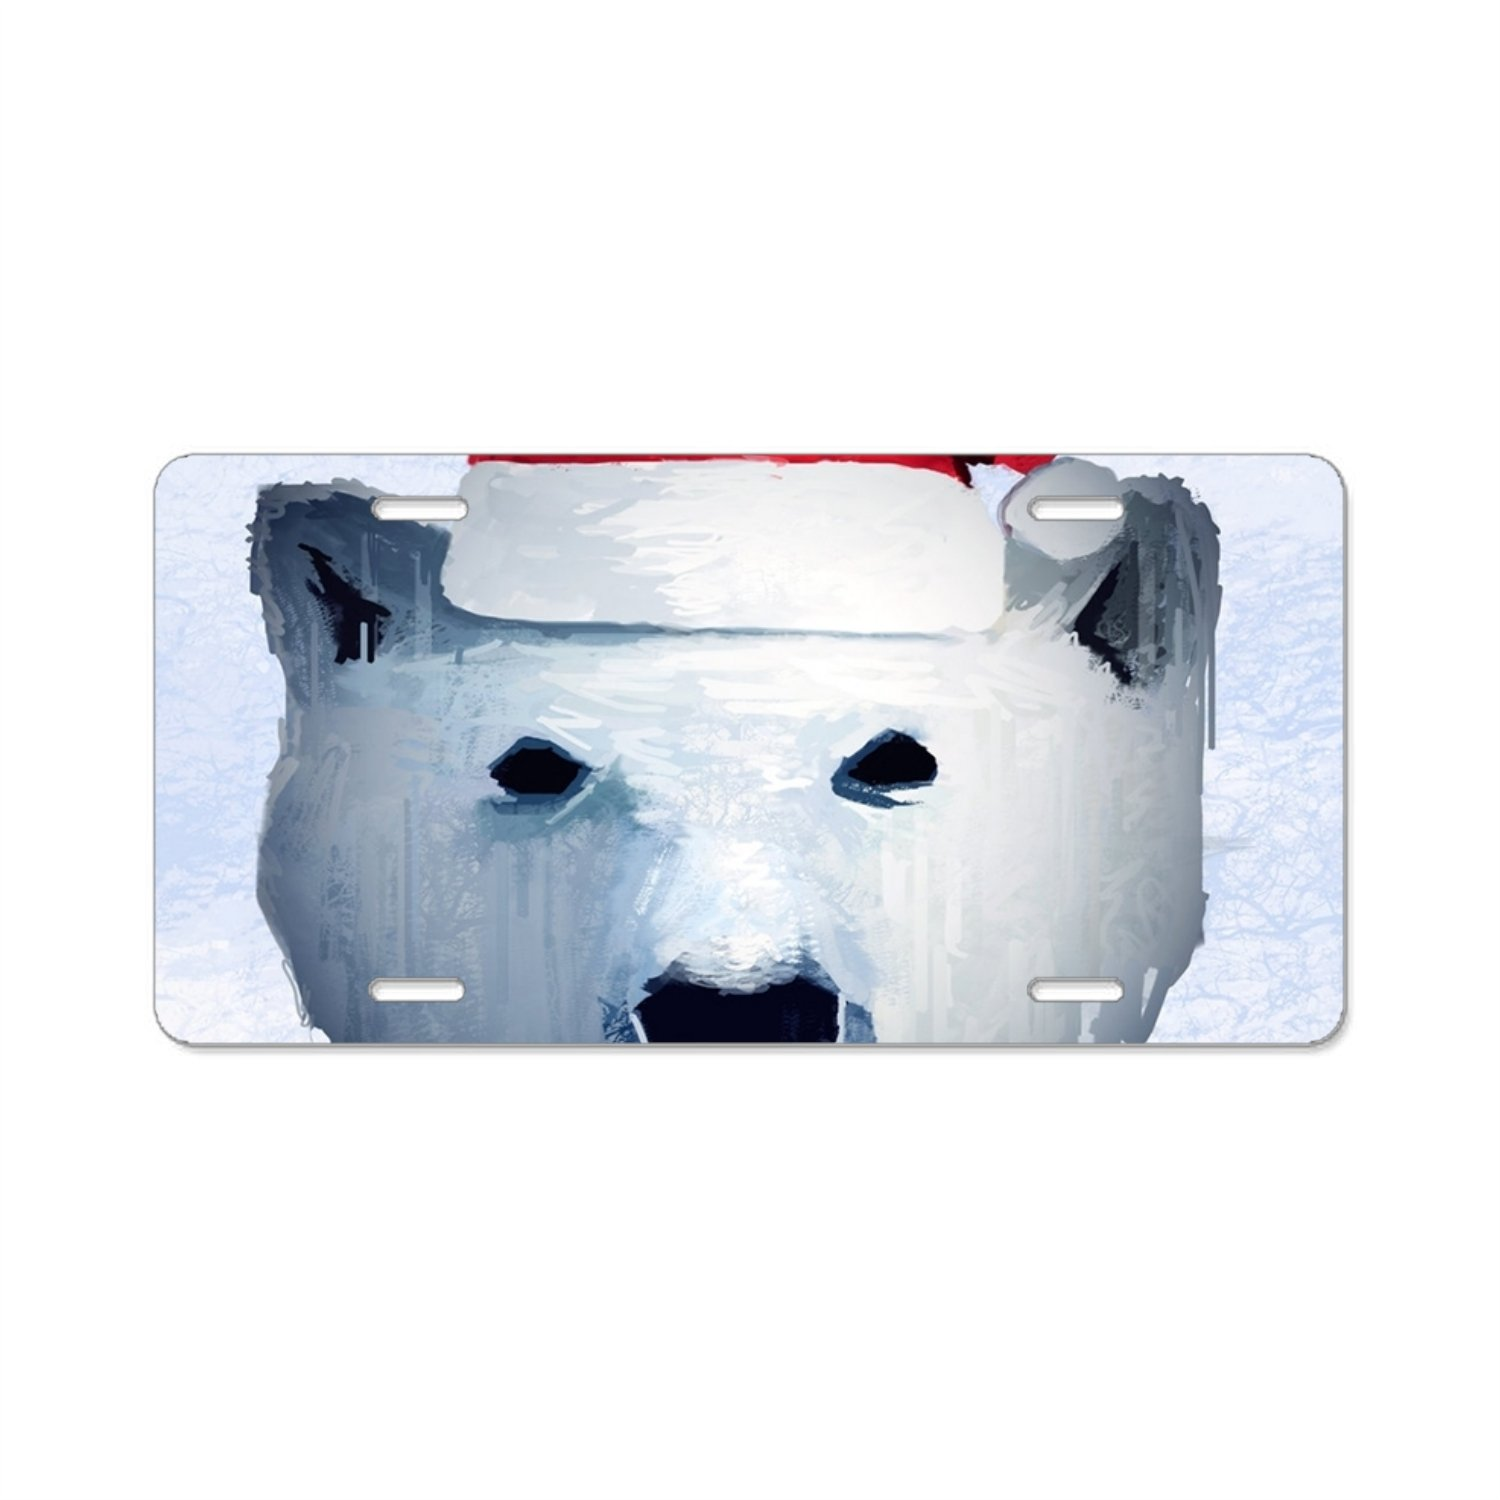 Imtailang The Wolf Custom Plate Frame Stainless Steel Express Personalized Tag Holder